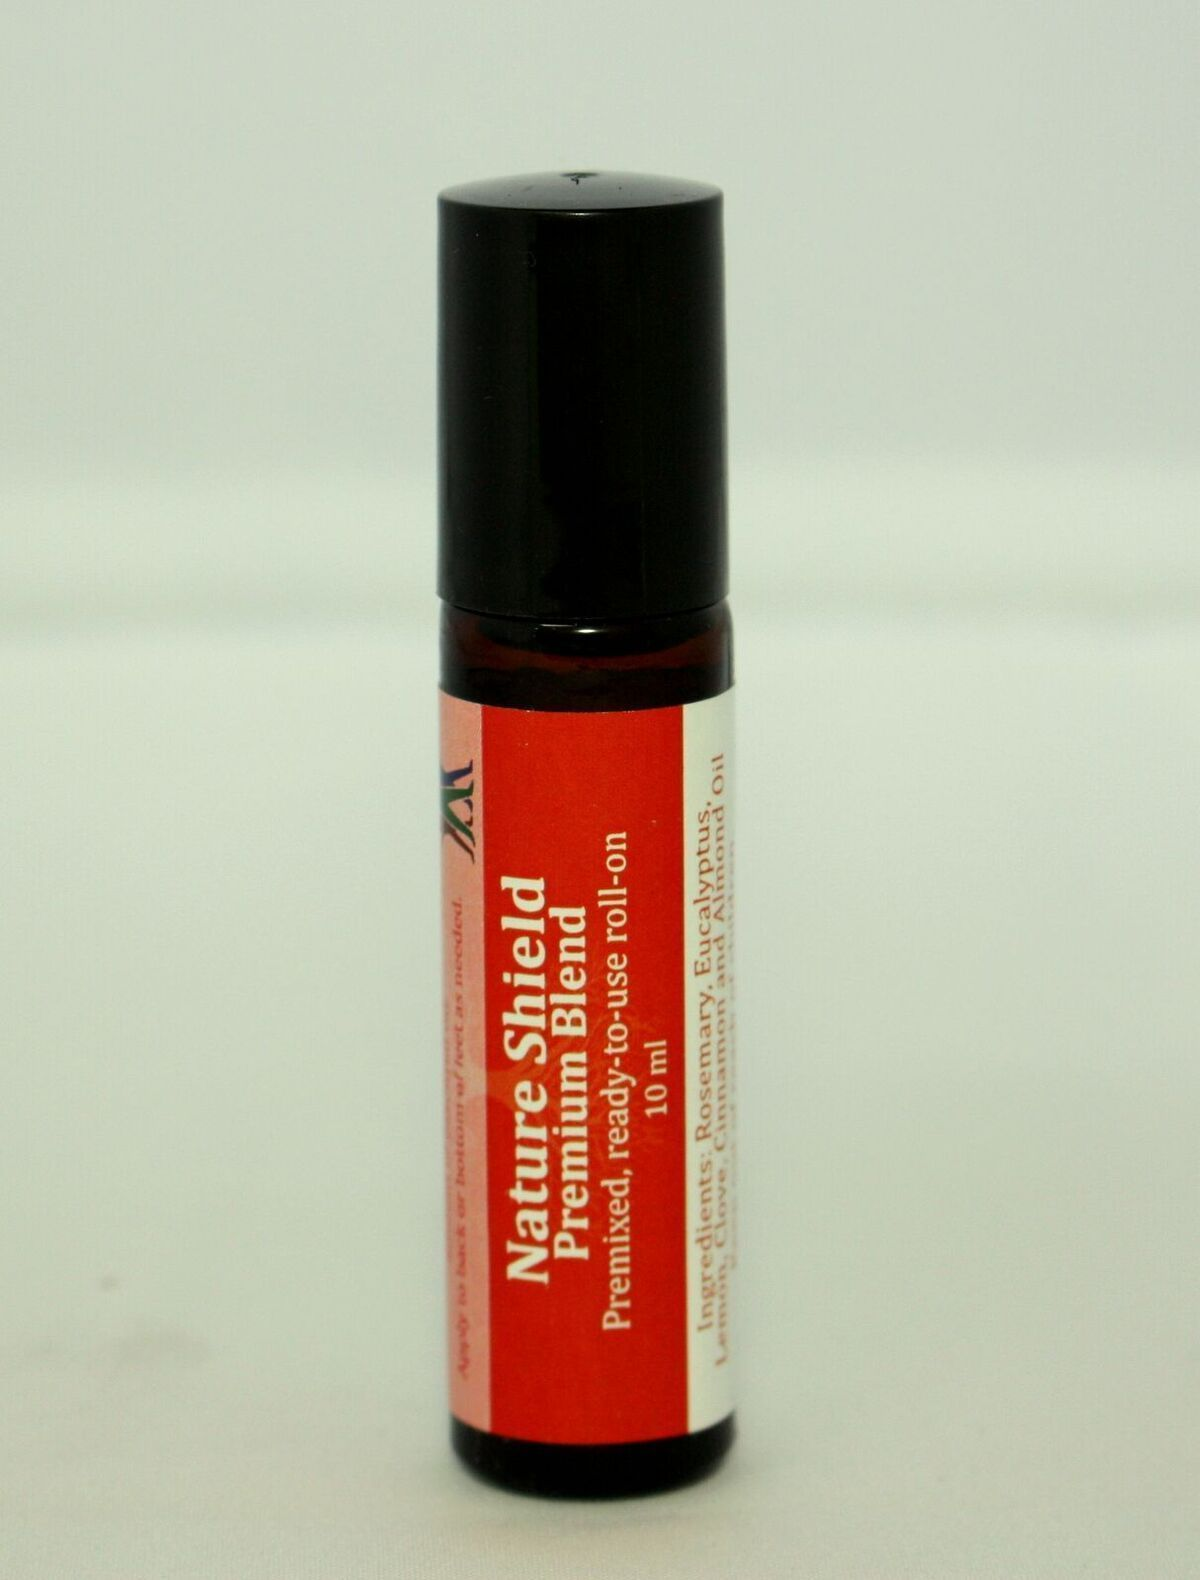 Aromata Stress & Anxiety Relief Essential Oil Blend Roll Ons With Calming Effect